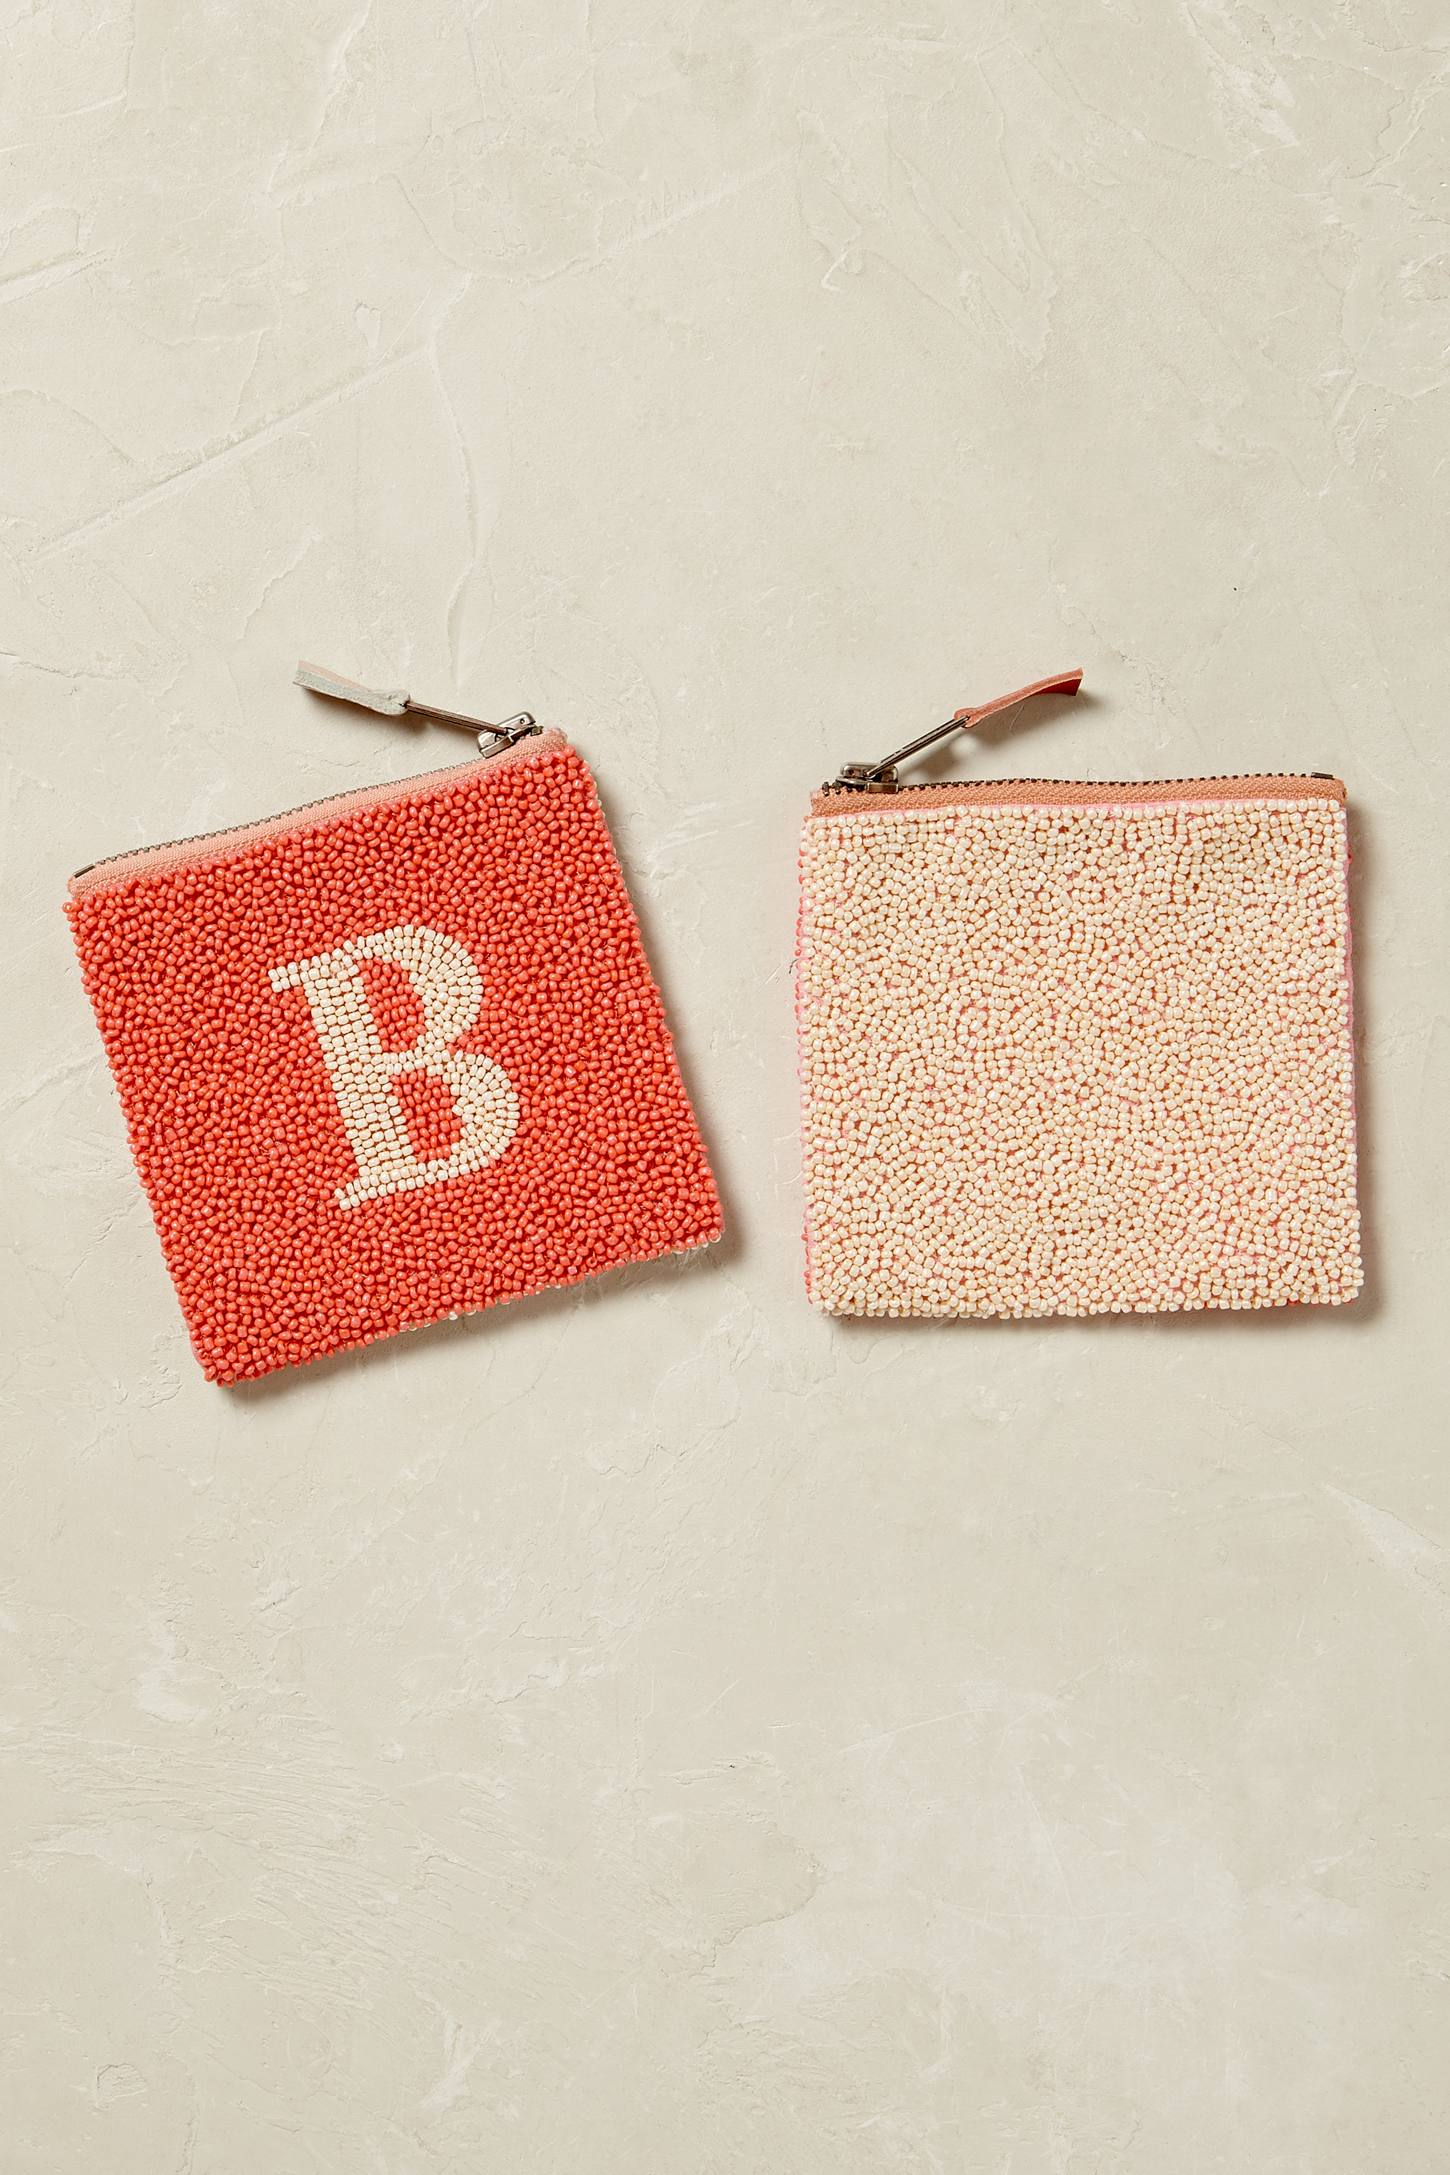 Slide View: 3: Monogram Beaded Coin Purse